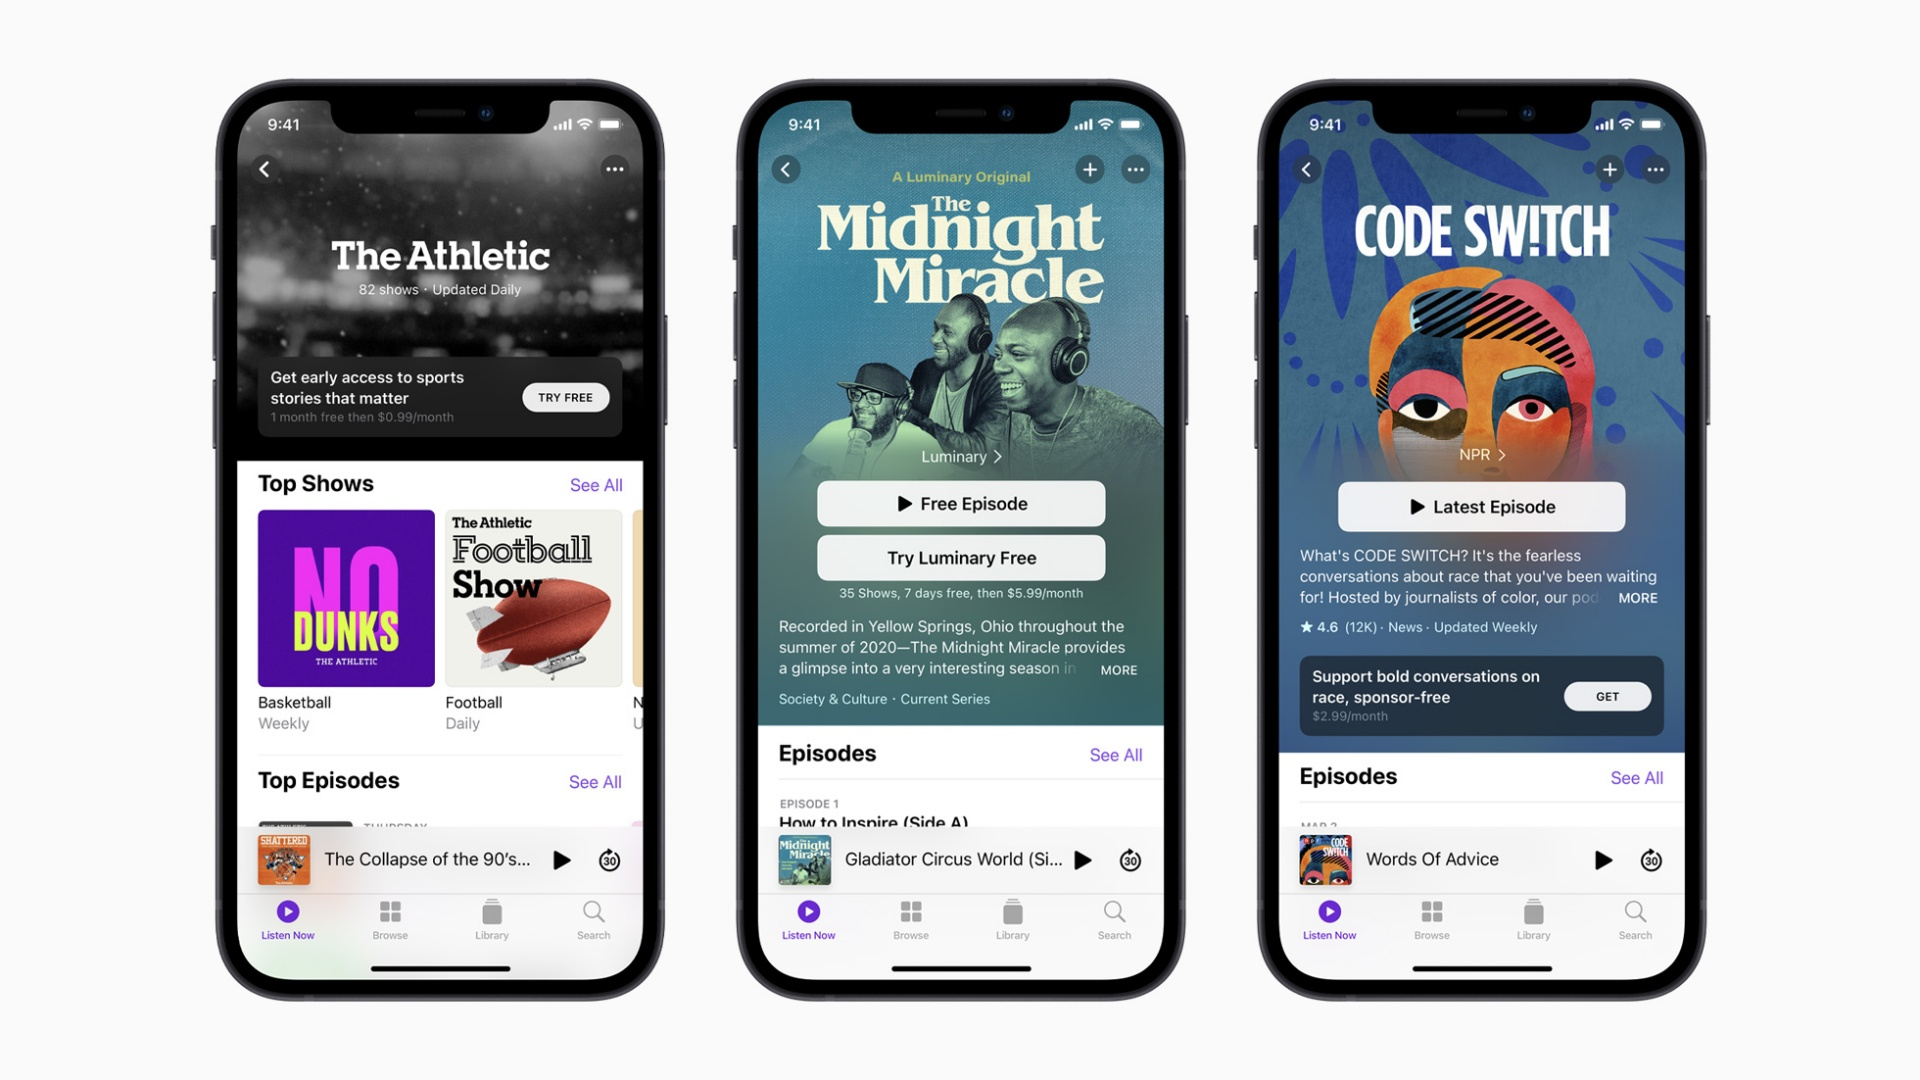 Delayed last month, Apple paid Podcasts expected 15th June - htxt.africa